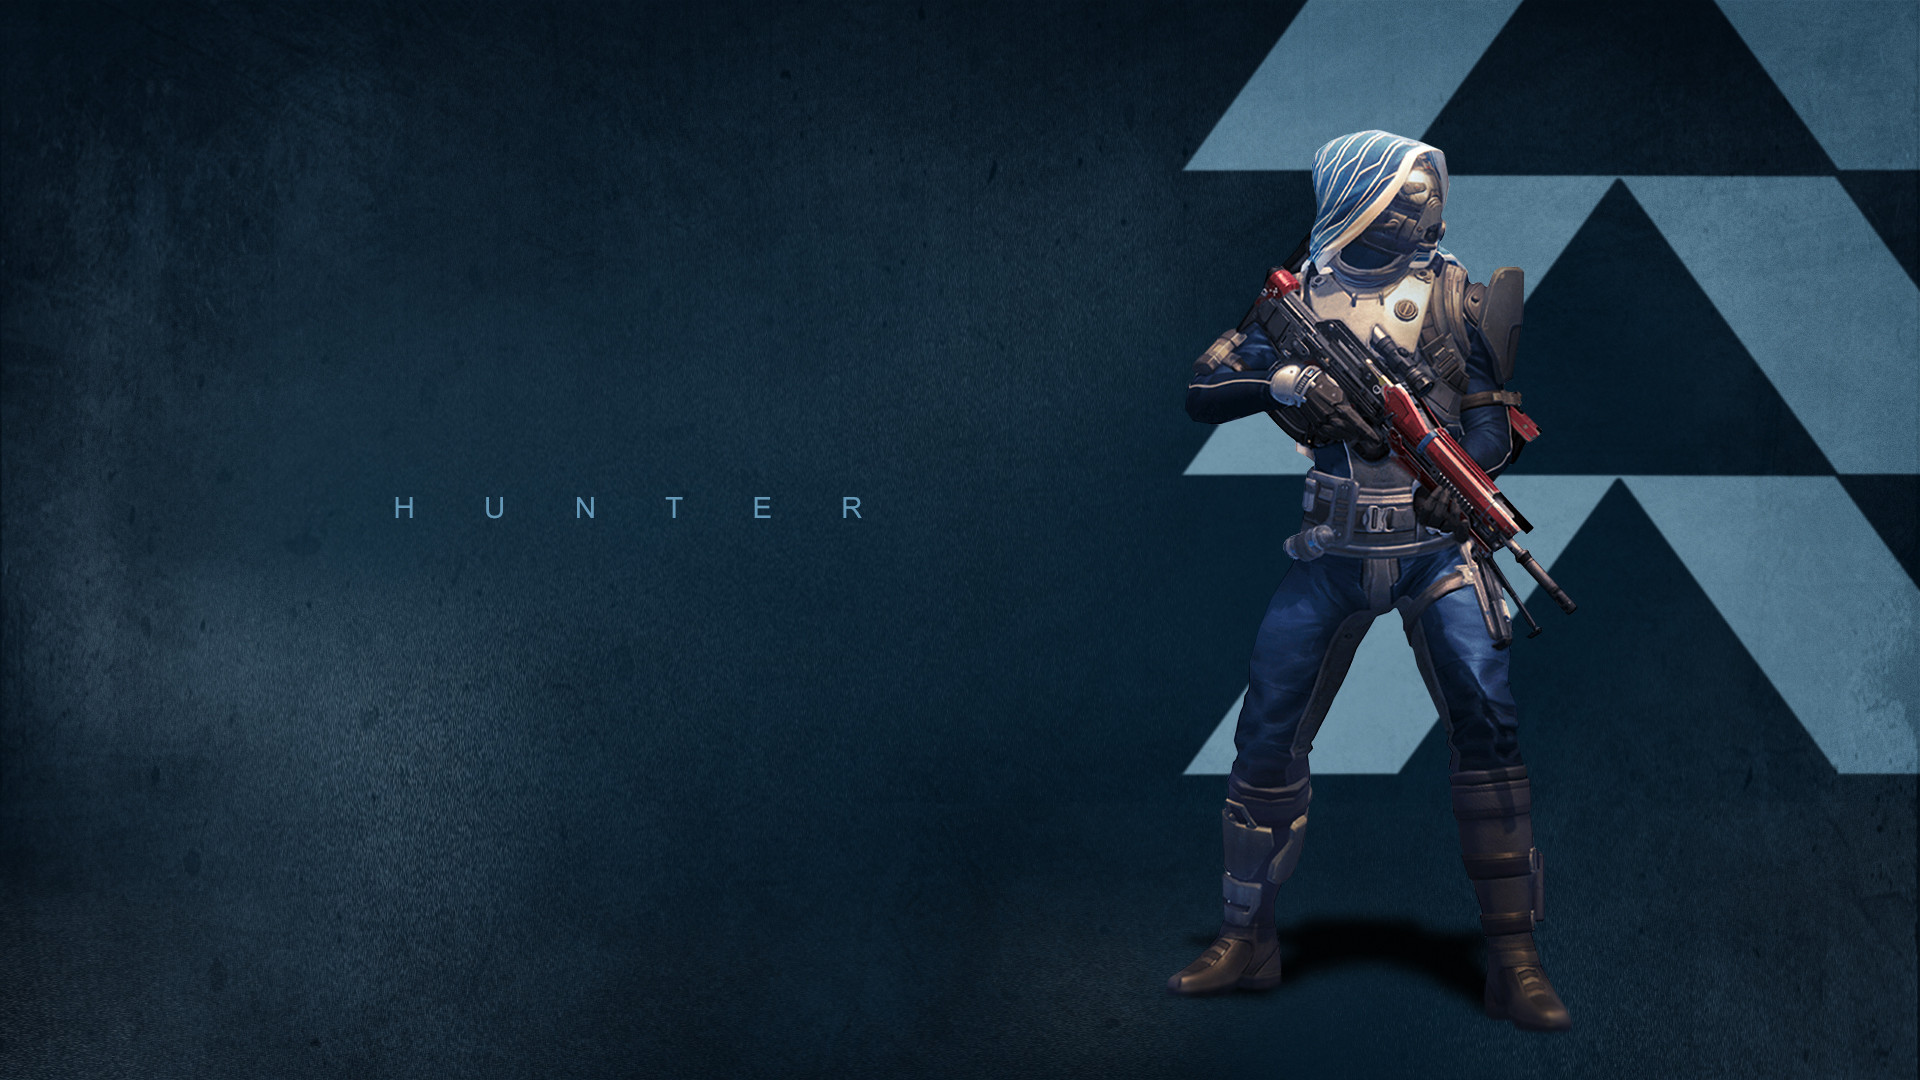 Destiny Wallpapers | Movie HD Wallpapers